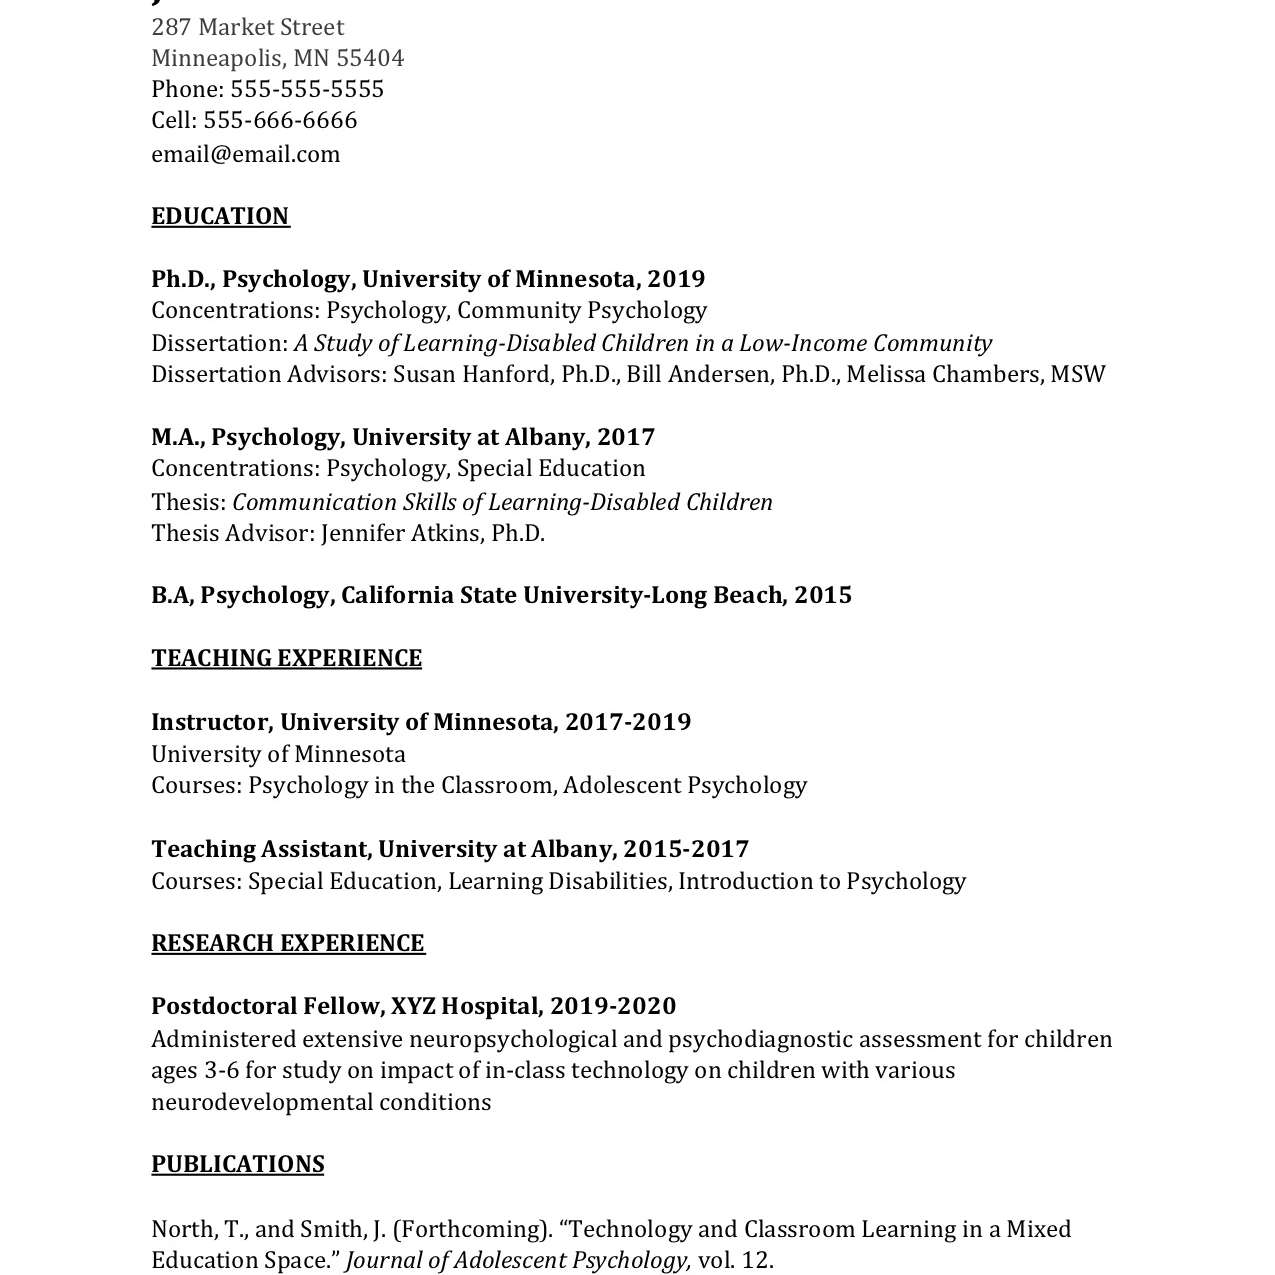 academic curriculum vitae cv example and writing tips professional resume software Resume Professional Academic Resume